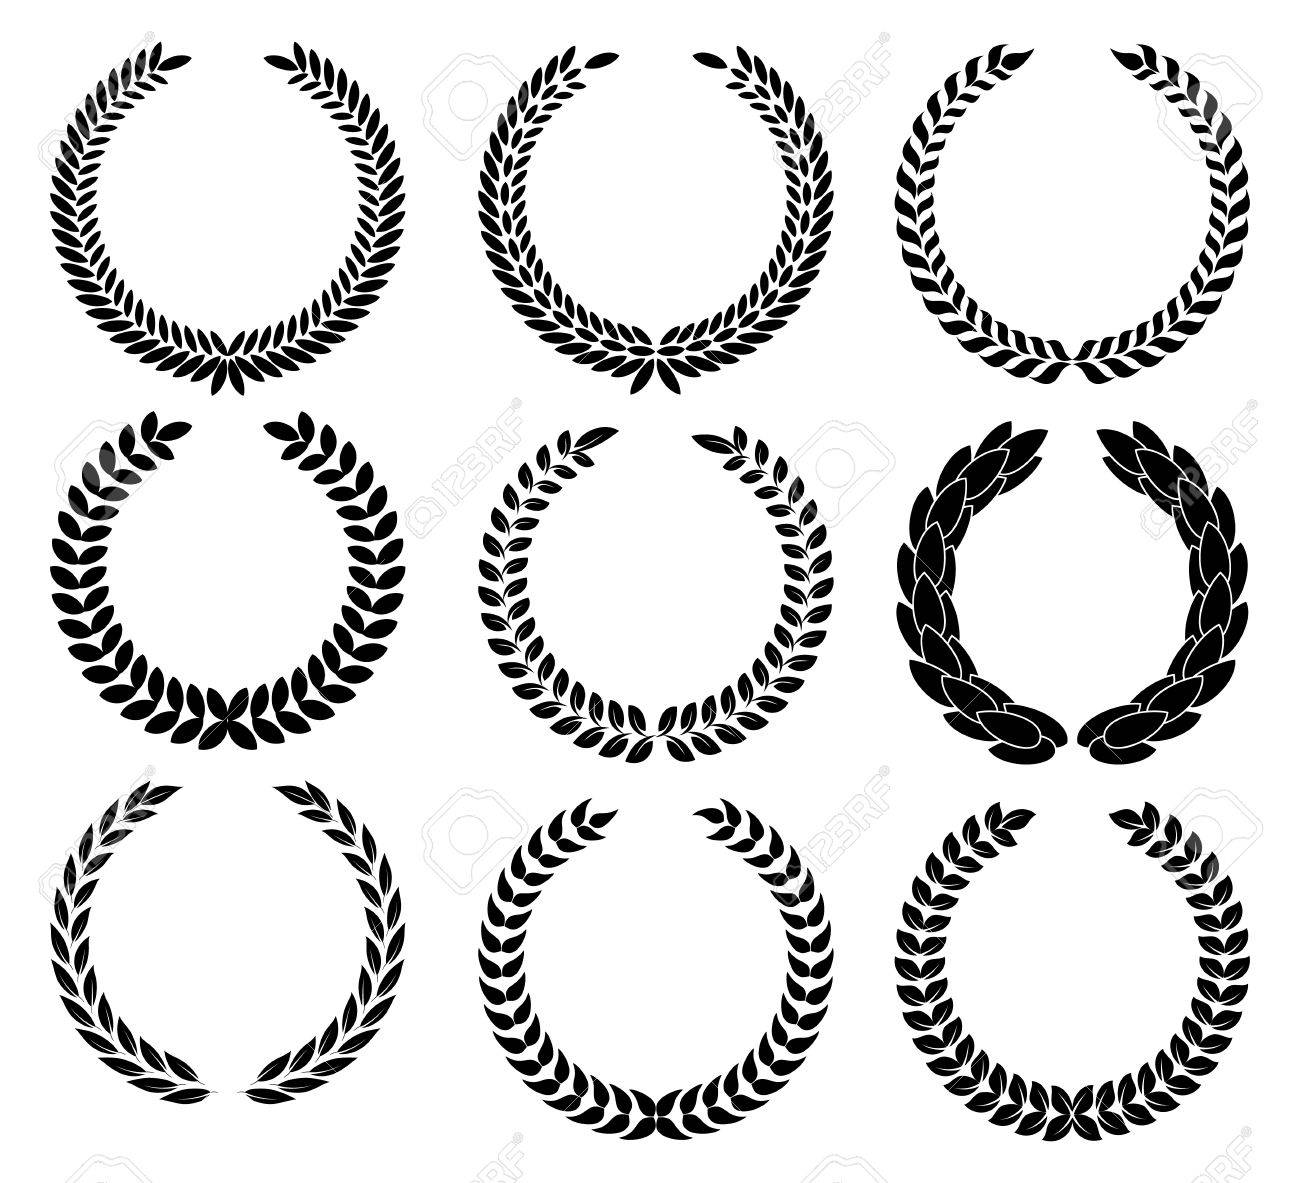 Set laurel wreath symbol of victory and achievement design set laurel wreath symbol of victory and achievement design element for construction of medals buycottarizona Image collections